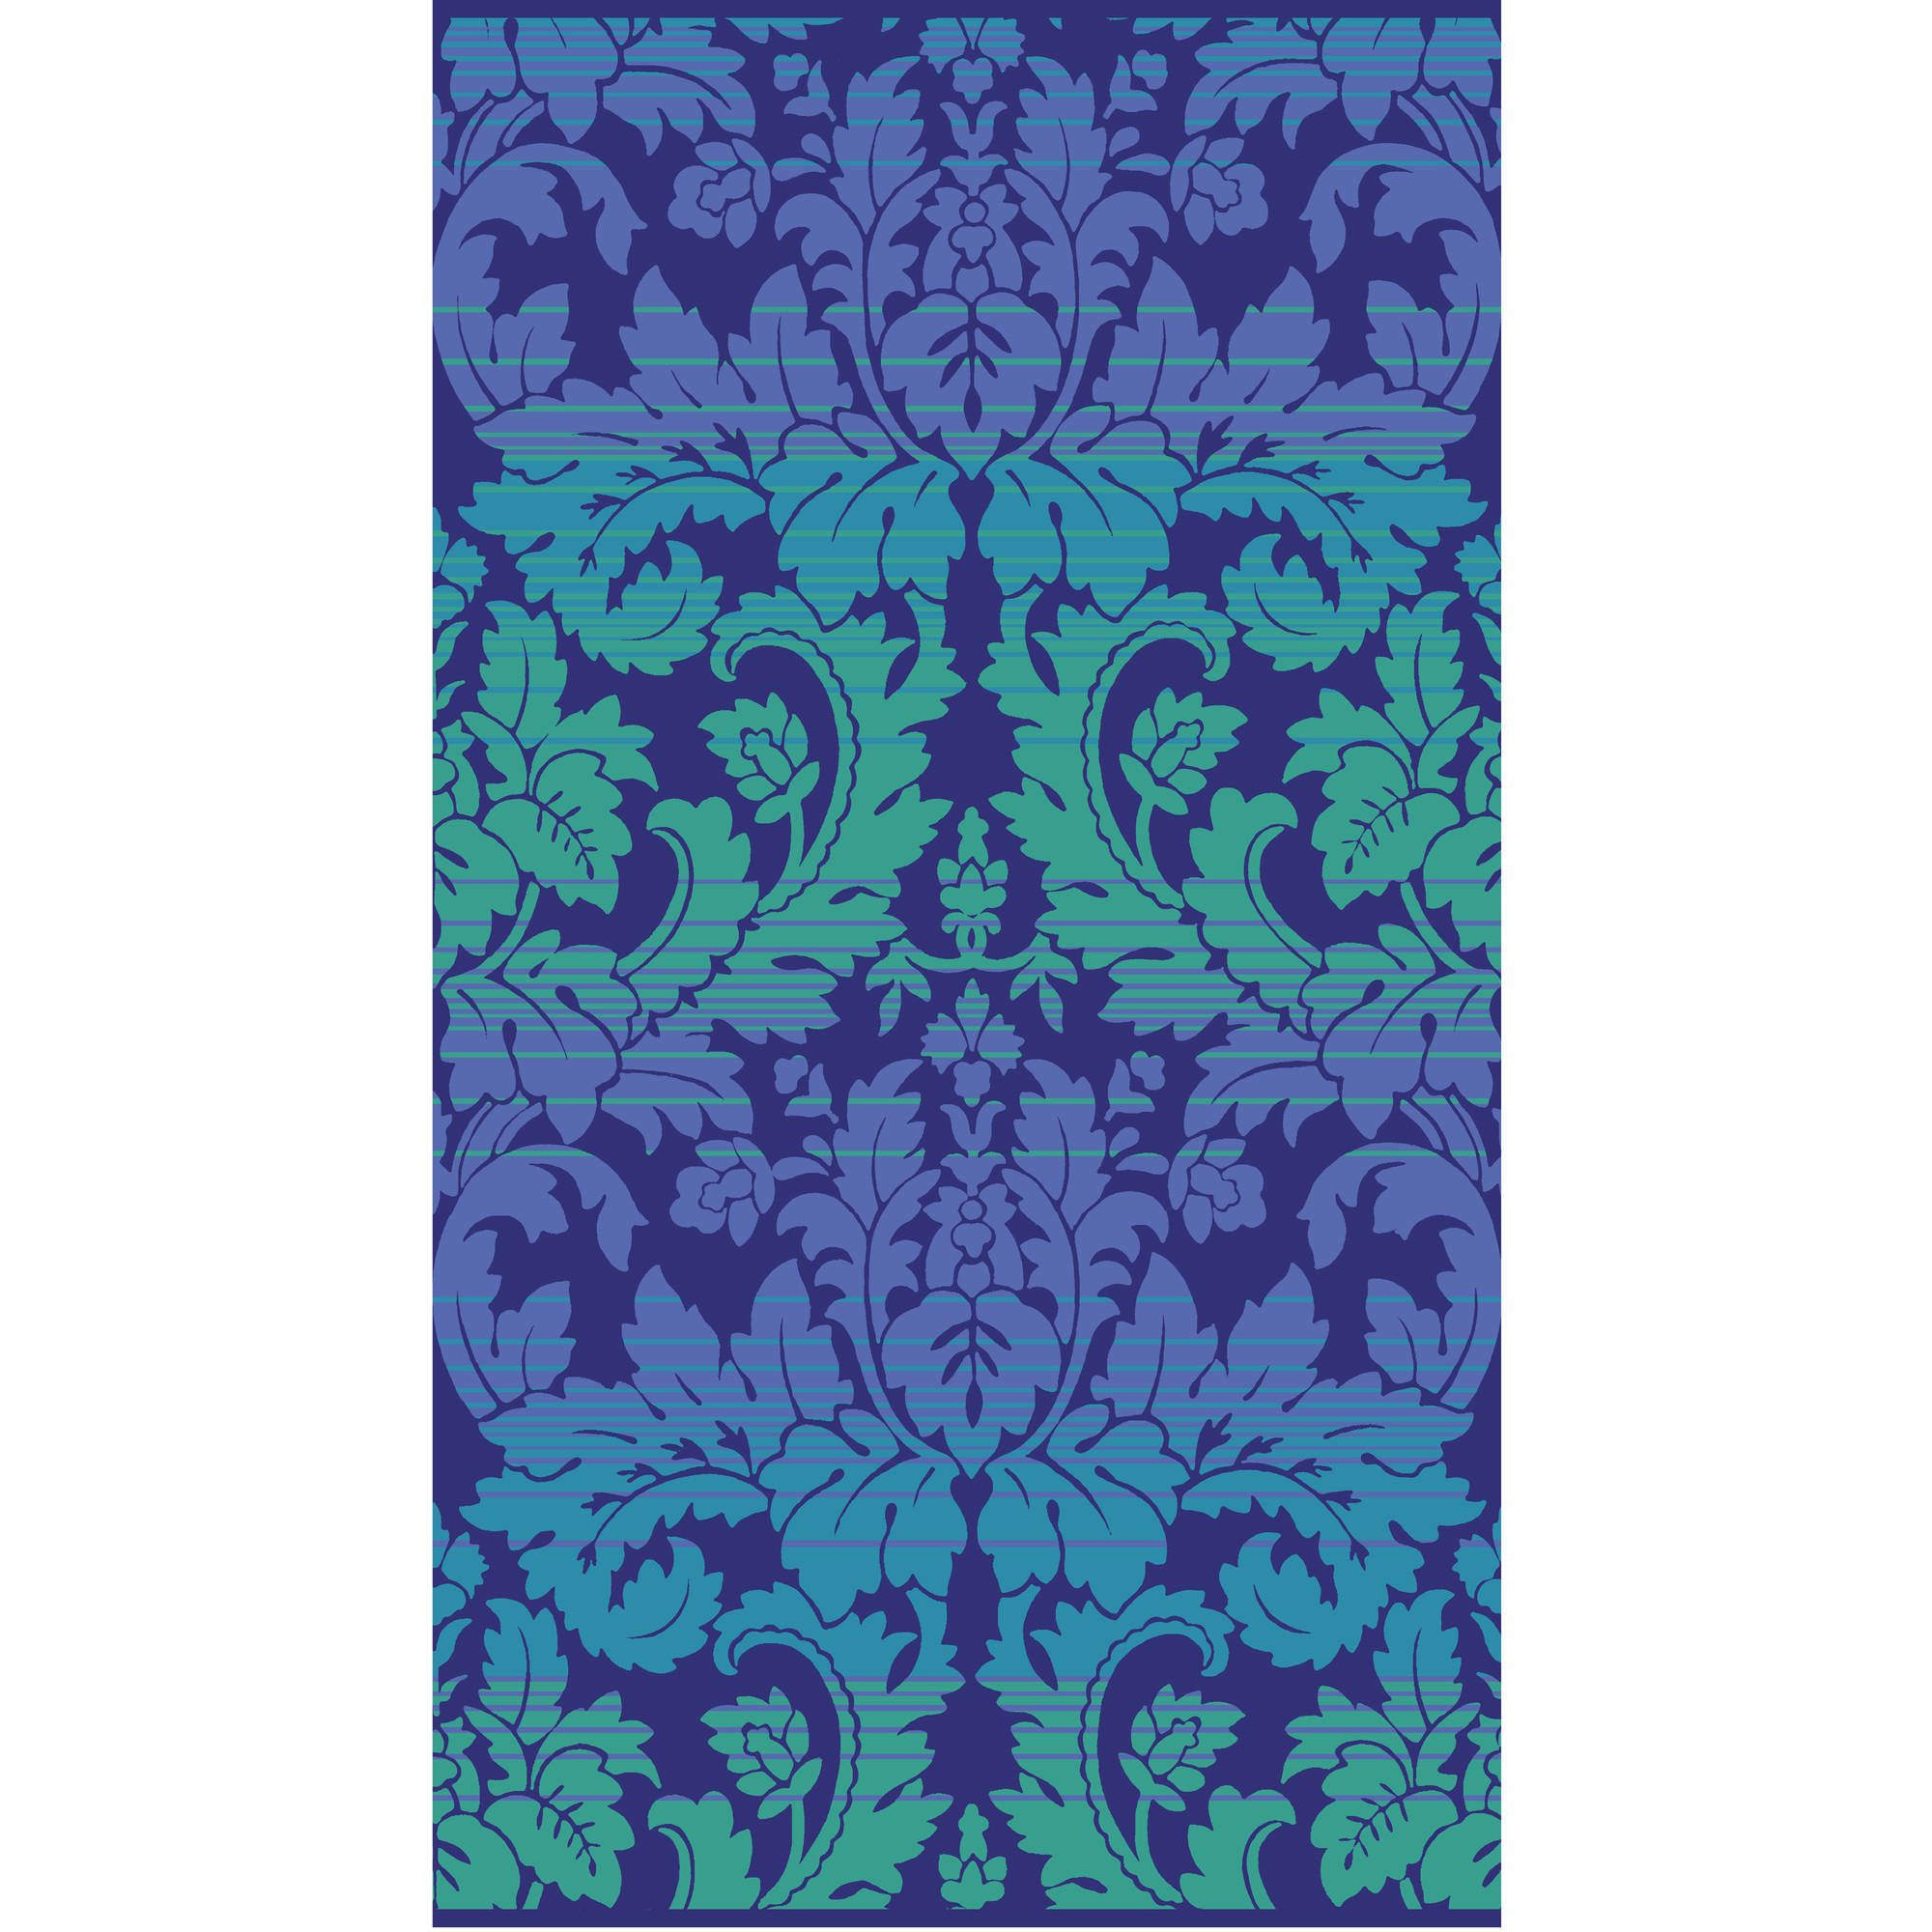 "Better Homes and Gardens 40"" x 72"" Oversized Woven Beach Towel, Aqua Damask"